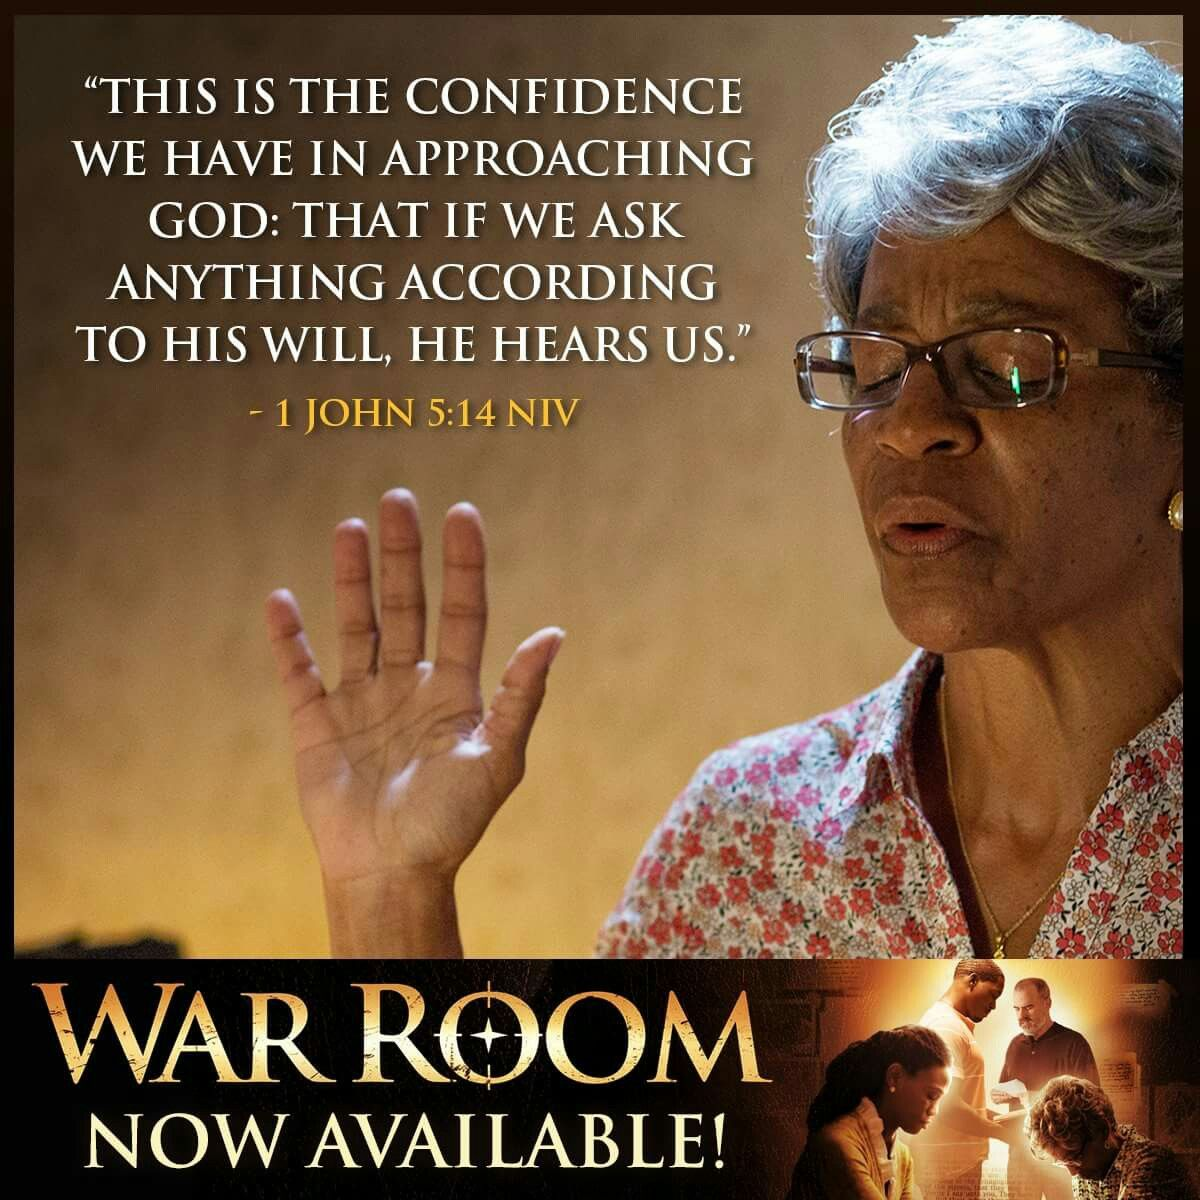 War Room Quotes Pinkingsdaughter On War Room  Pinterest  Prayer Warrior Holy .